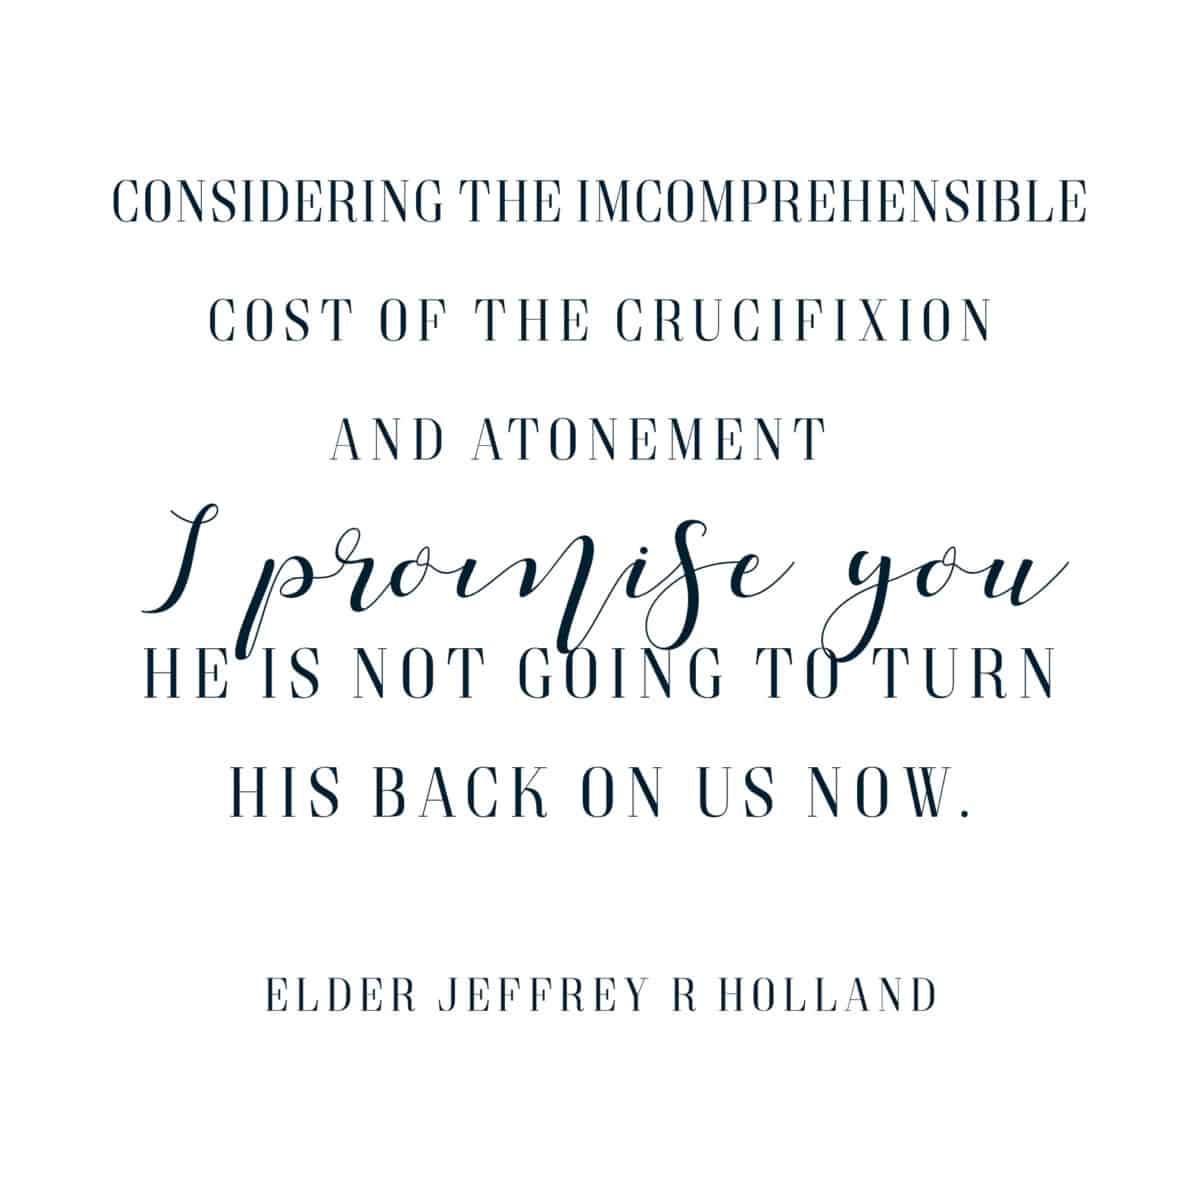 Jeffrey R Holland quote from the December Visiting Teaching Message